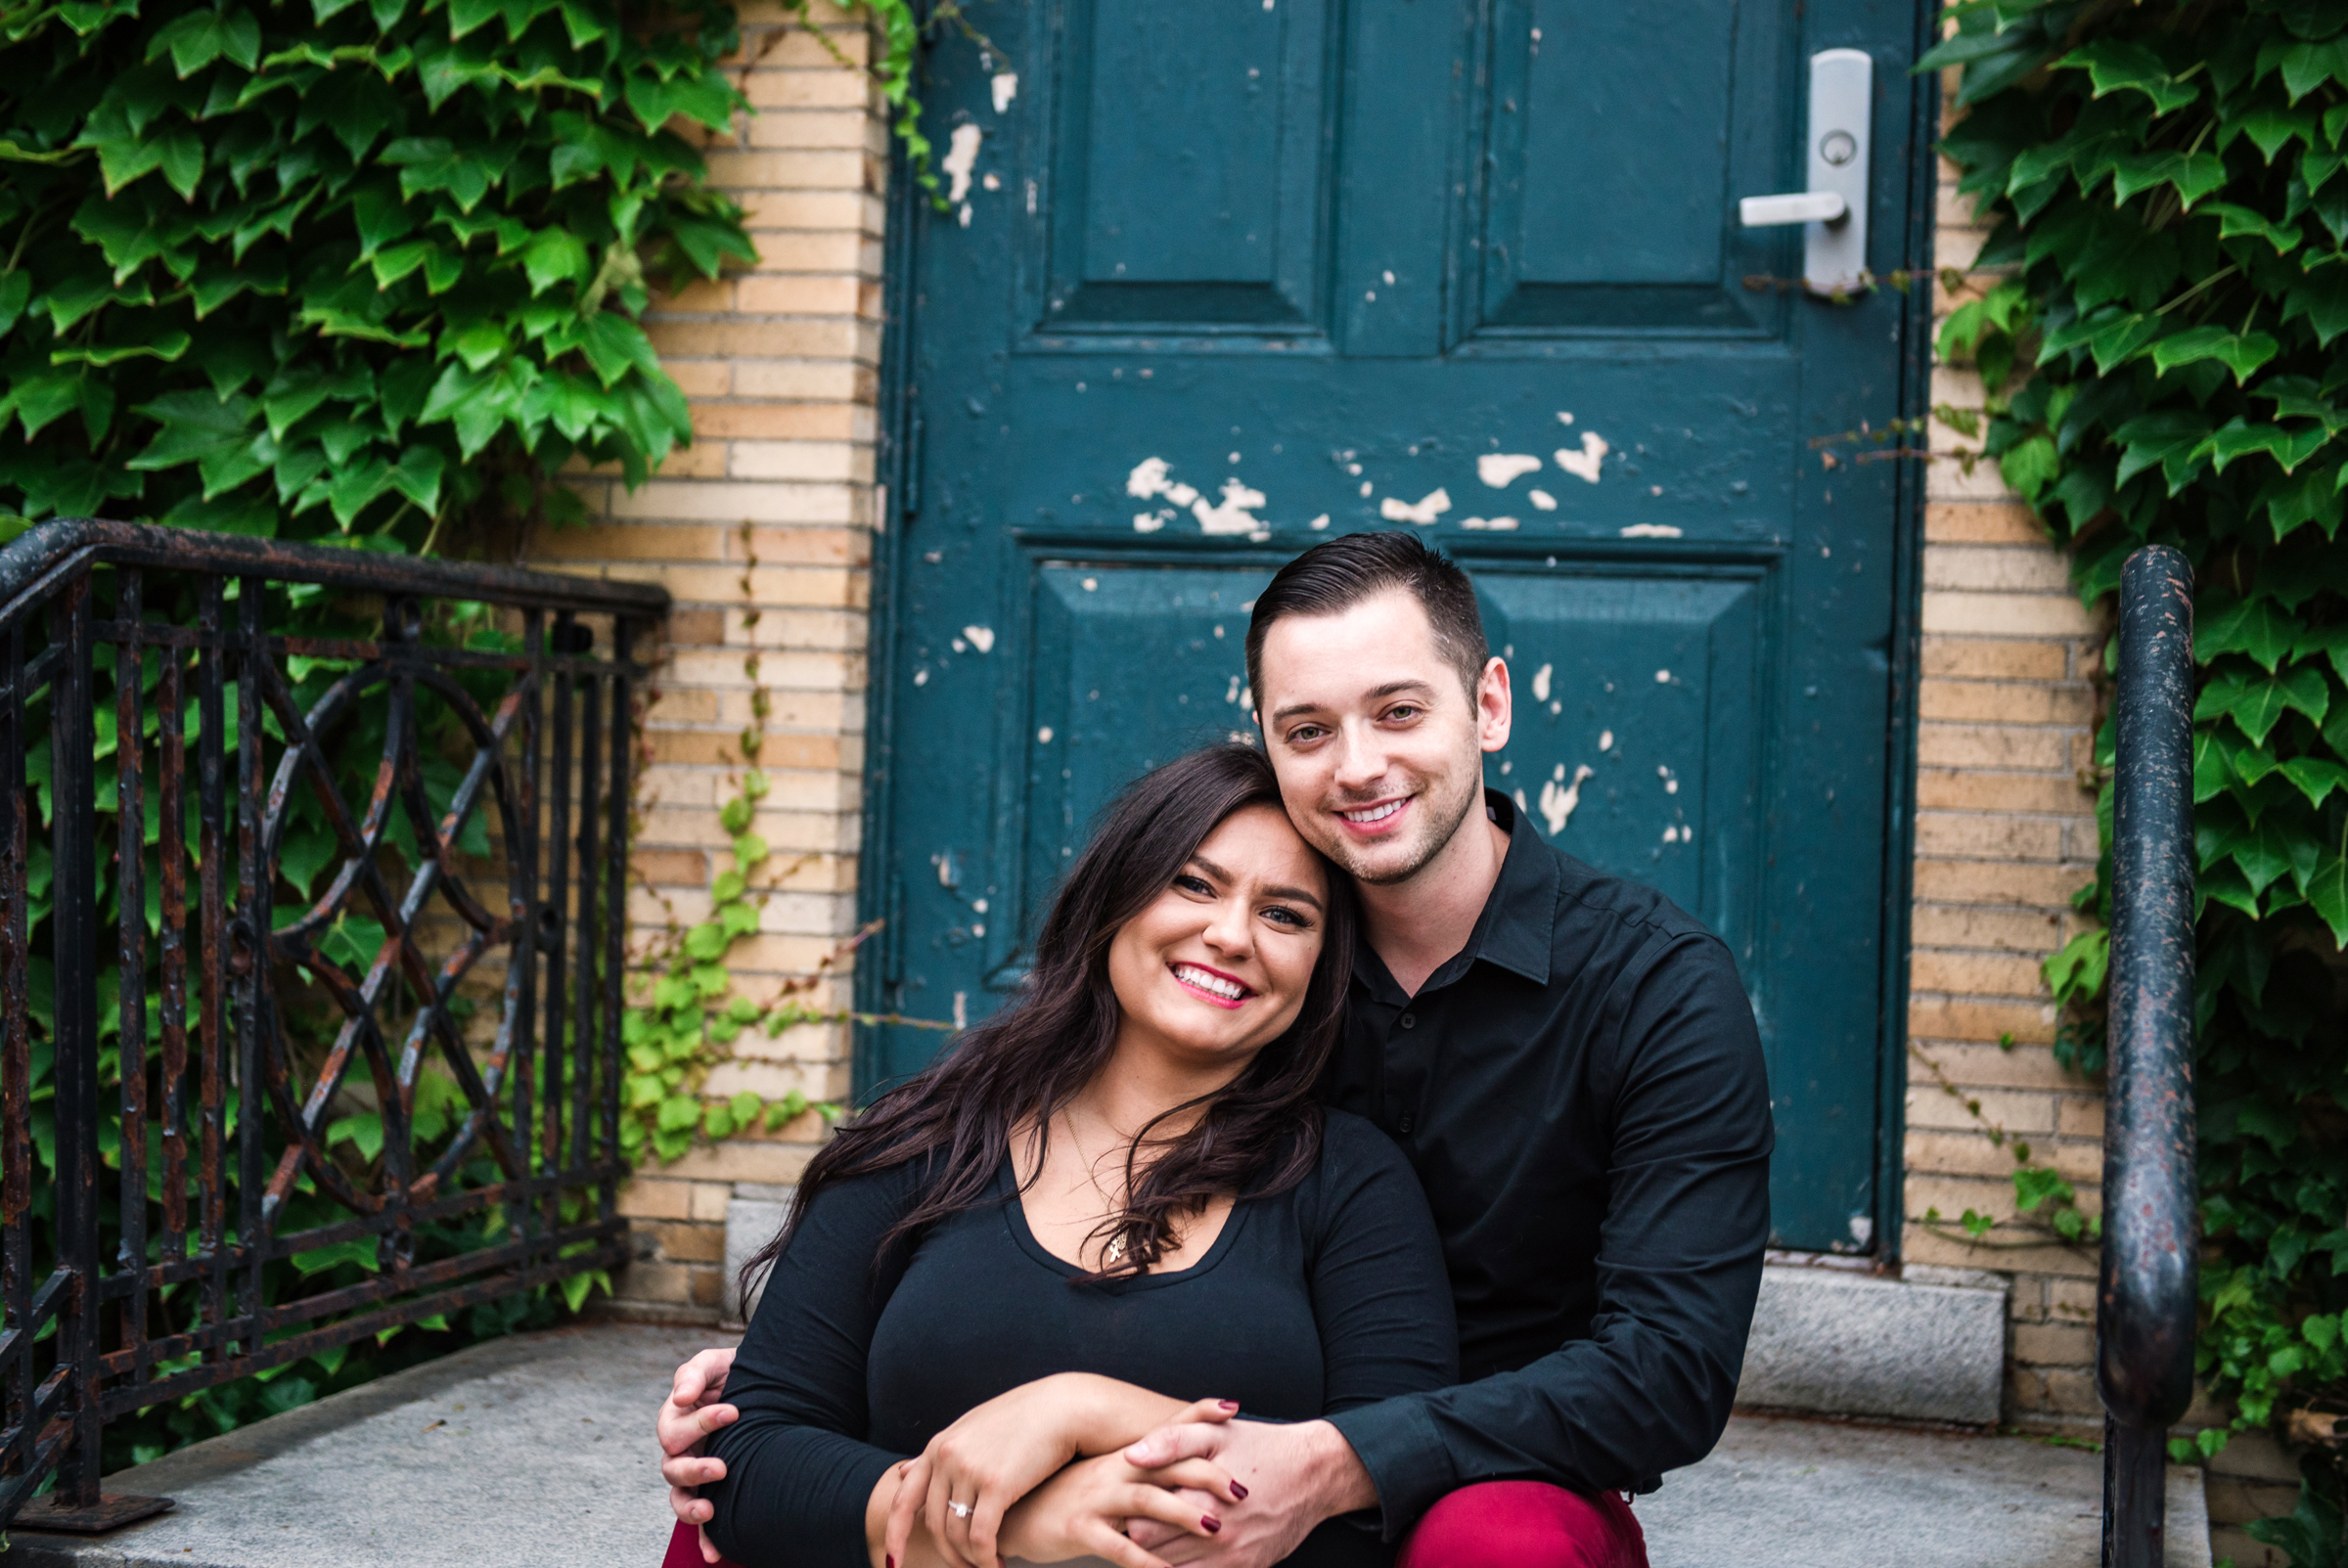 George_Eastman_House_Rochester_Engagement_Session_JILL_STUDIO_Rochester_NY_Photographer_DSC_6513.jpg